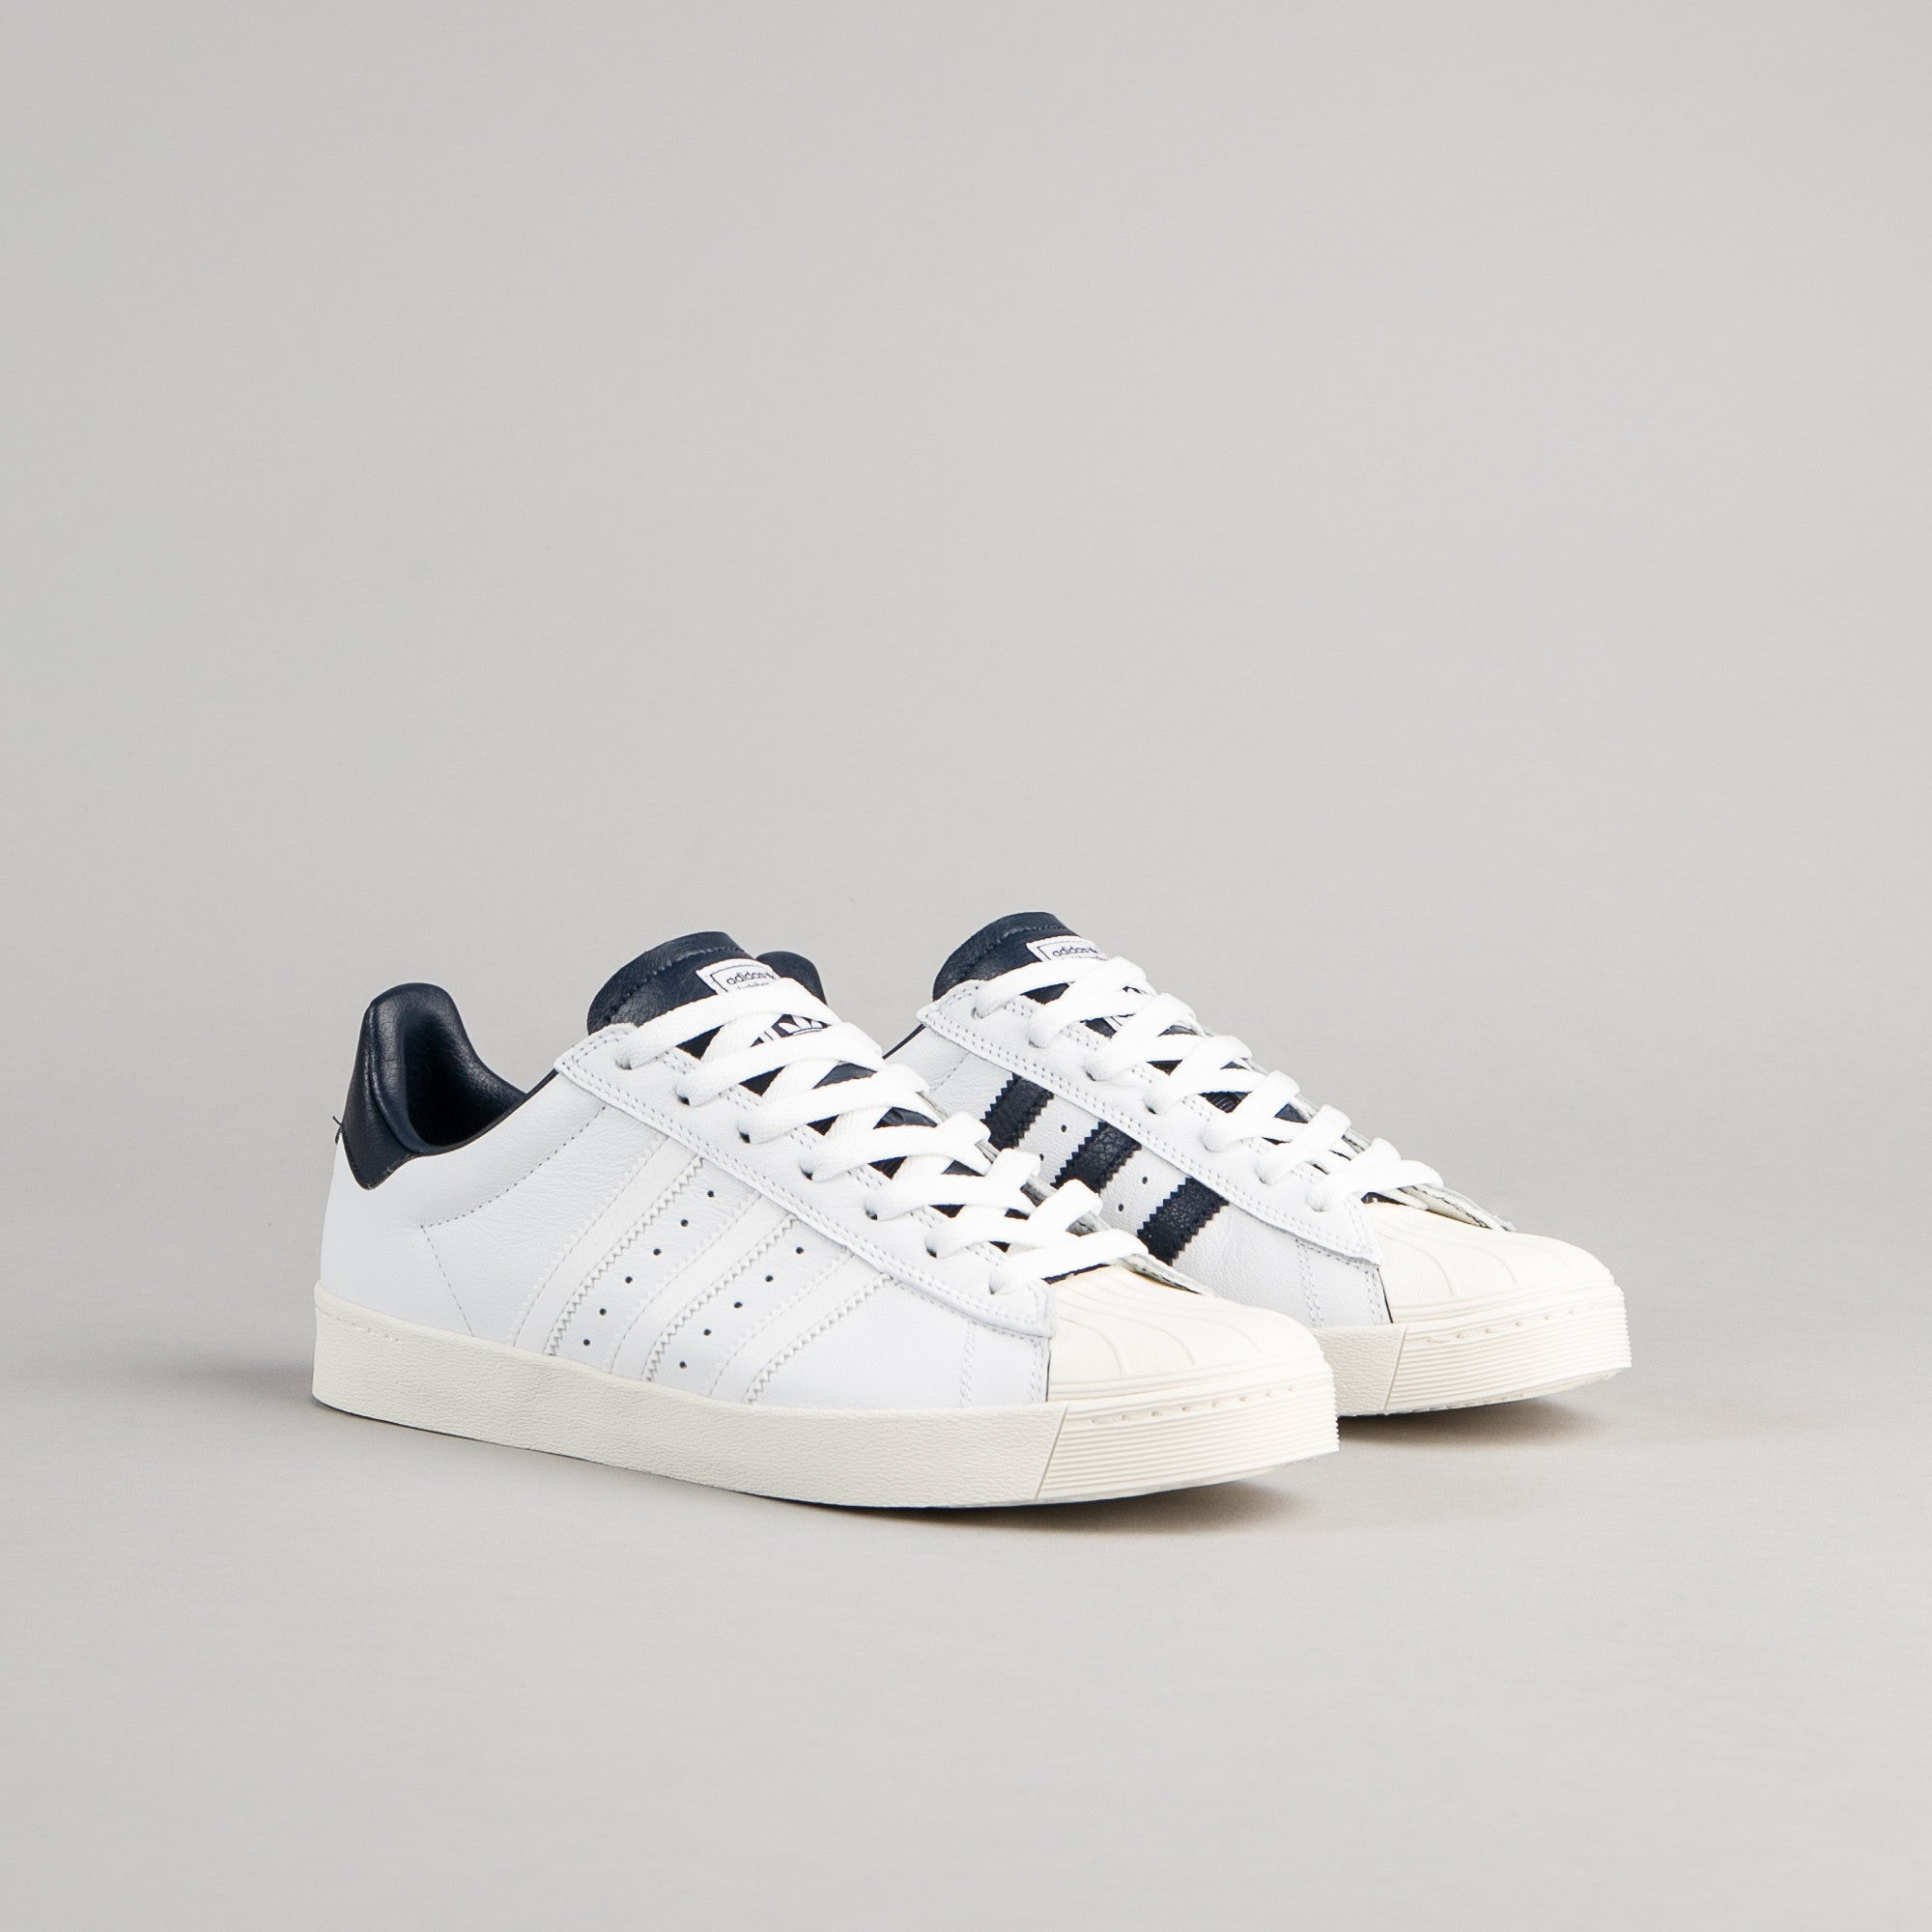 Cheap Adidas Superstar 80s Women's Snakeskin The Boombox